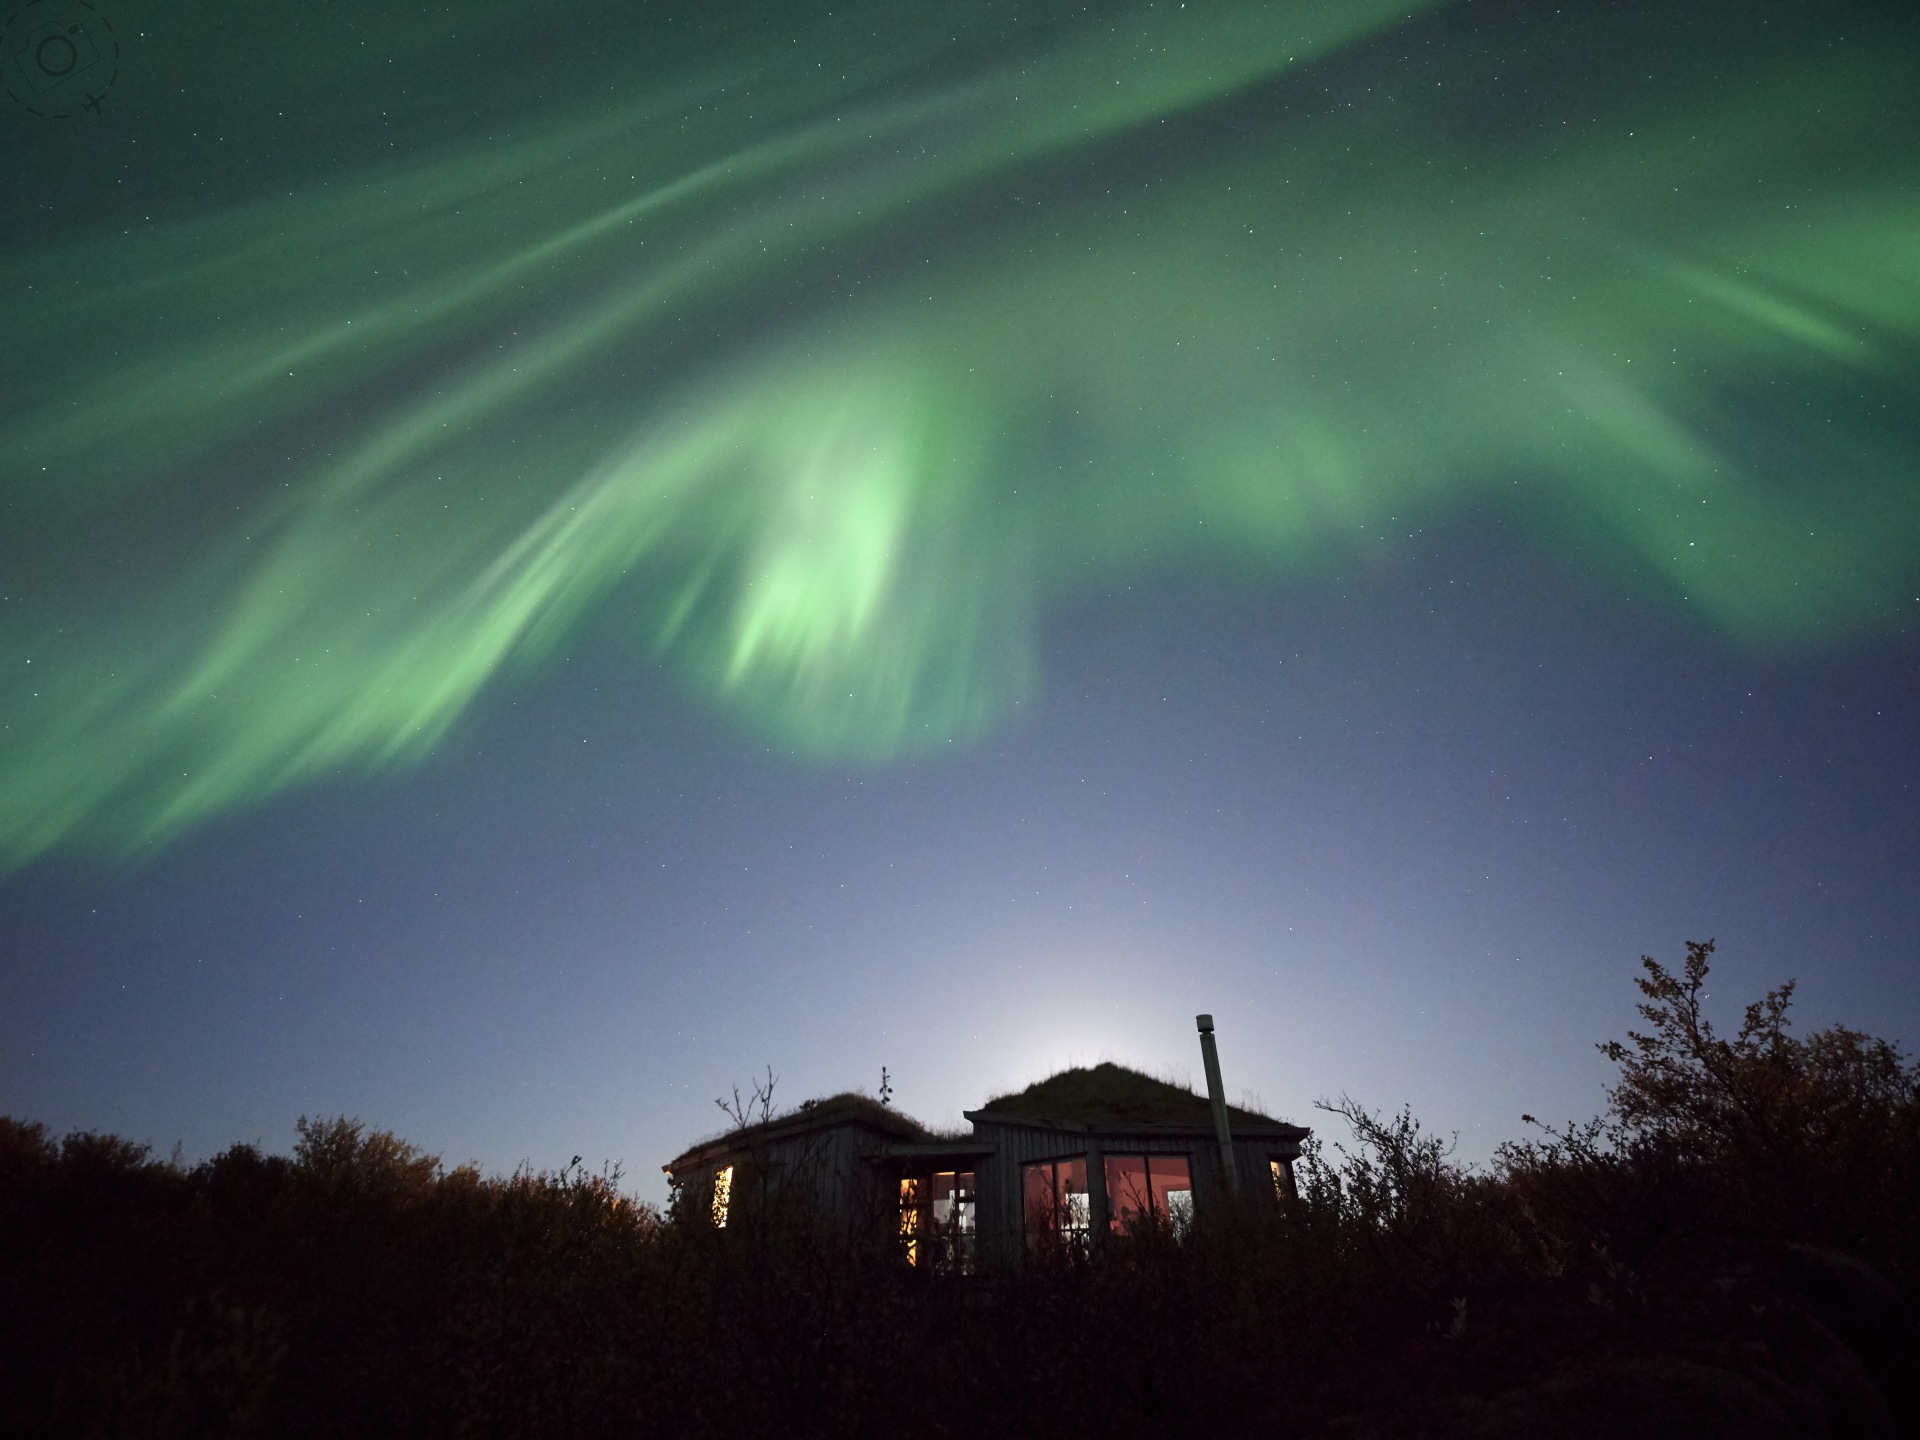 Aurora Photography Guide